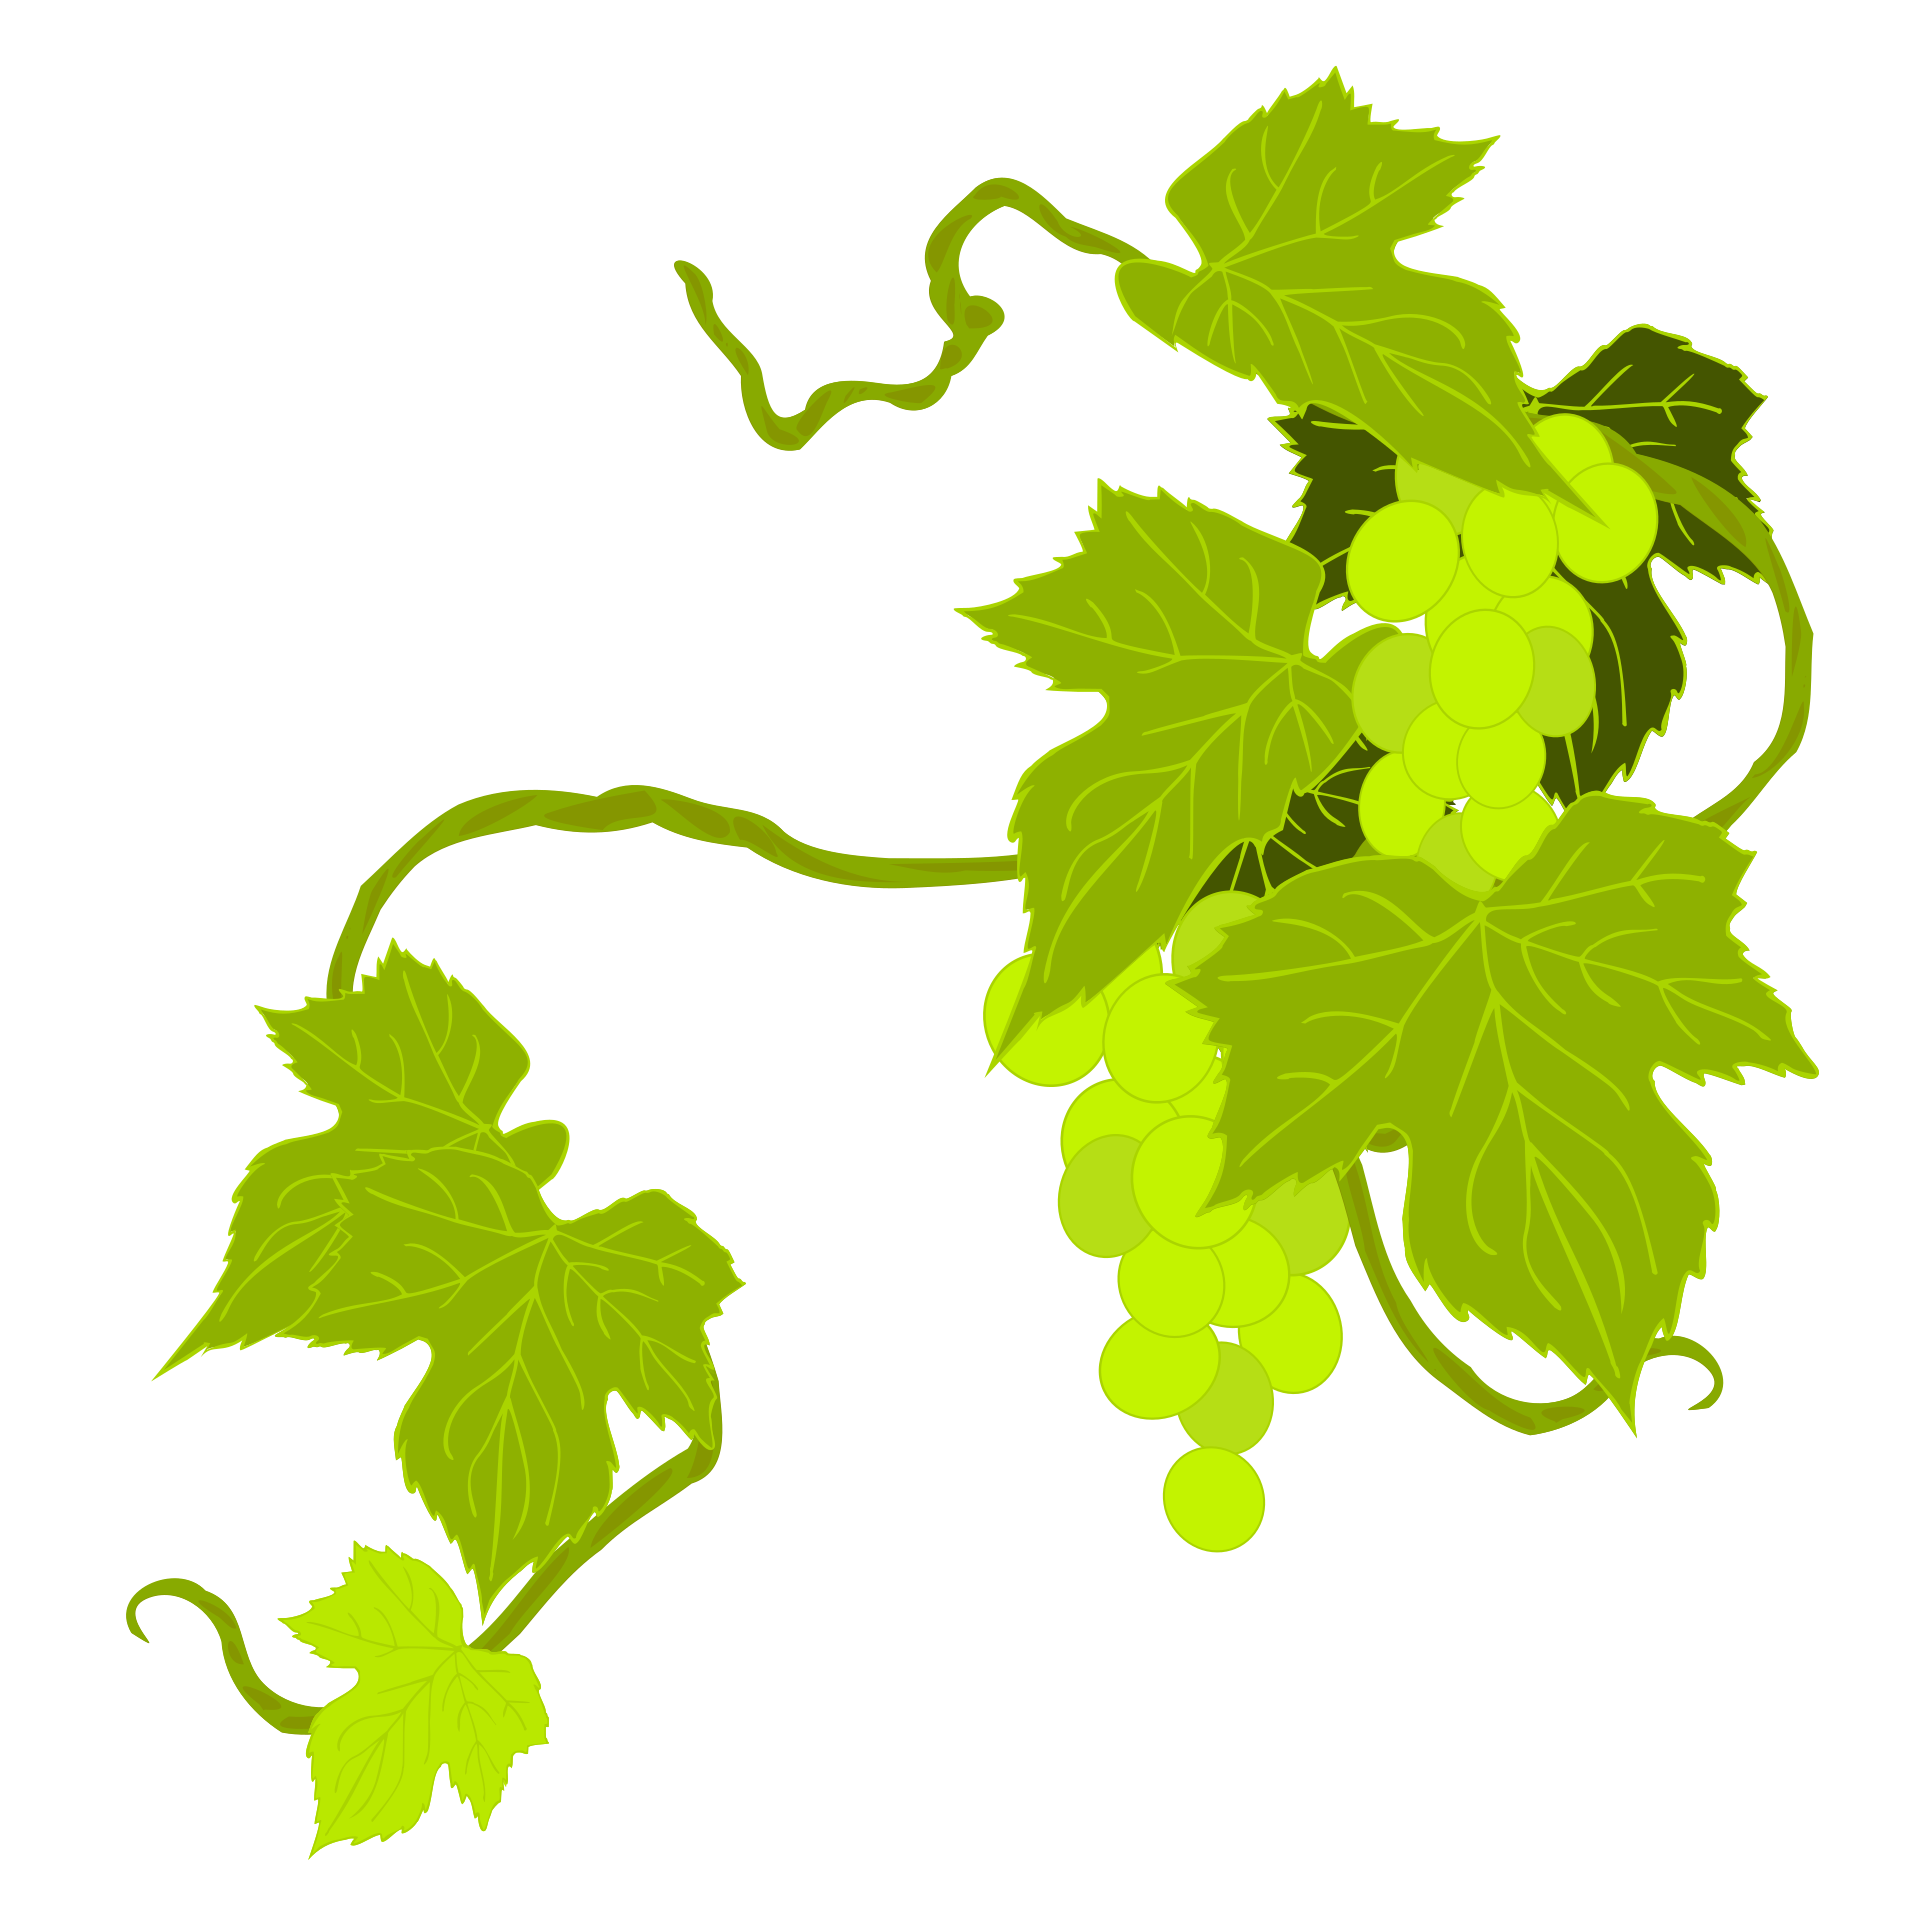 Grape Leaves On The Vine On A White Background Free Image